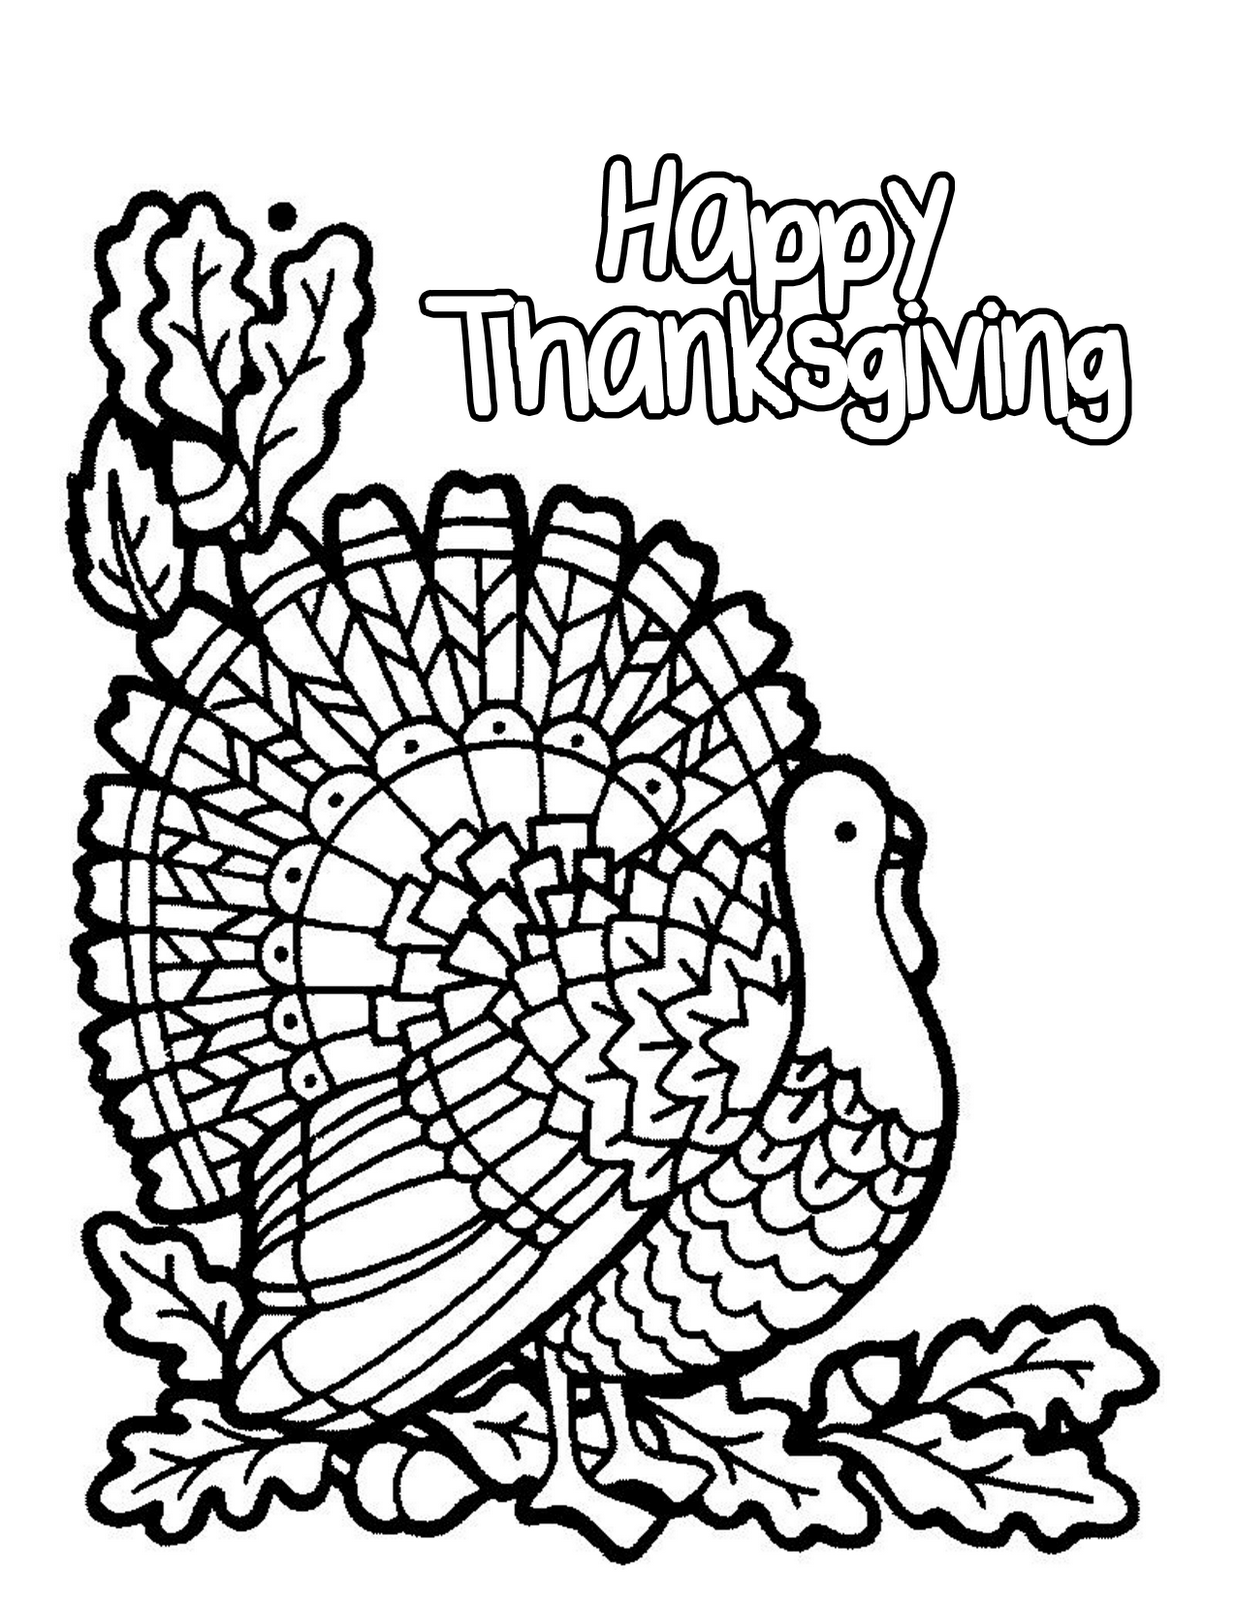 Thanksgiving Coloring Pages For Adults Coloring Home Turkey Coloring Pages Thanksgiving Coloring Book Free Thanksgiving Coloring Pages [ 1600 x 1236 Pixel ]